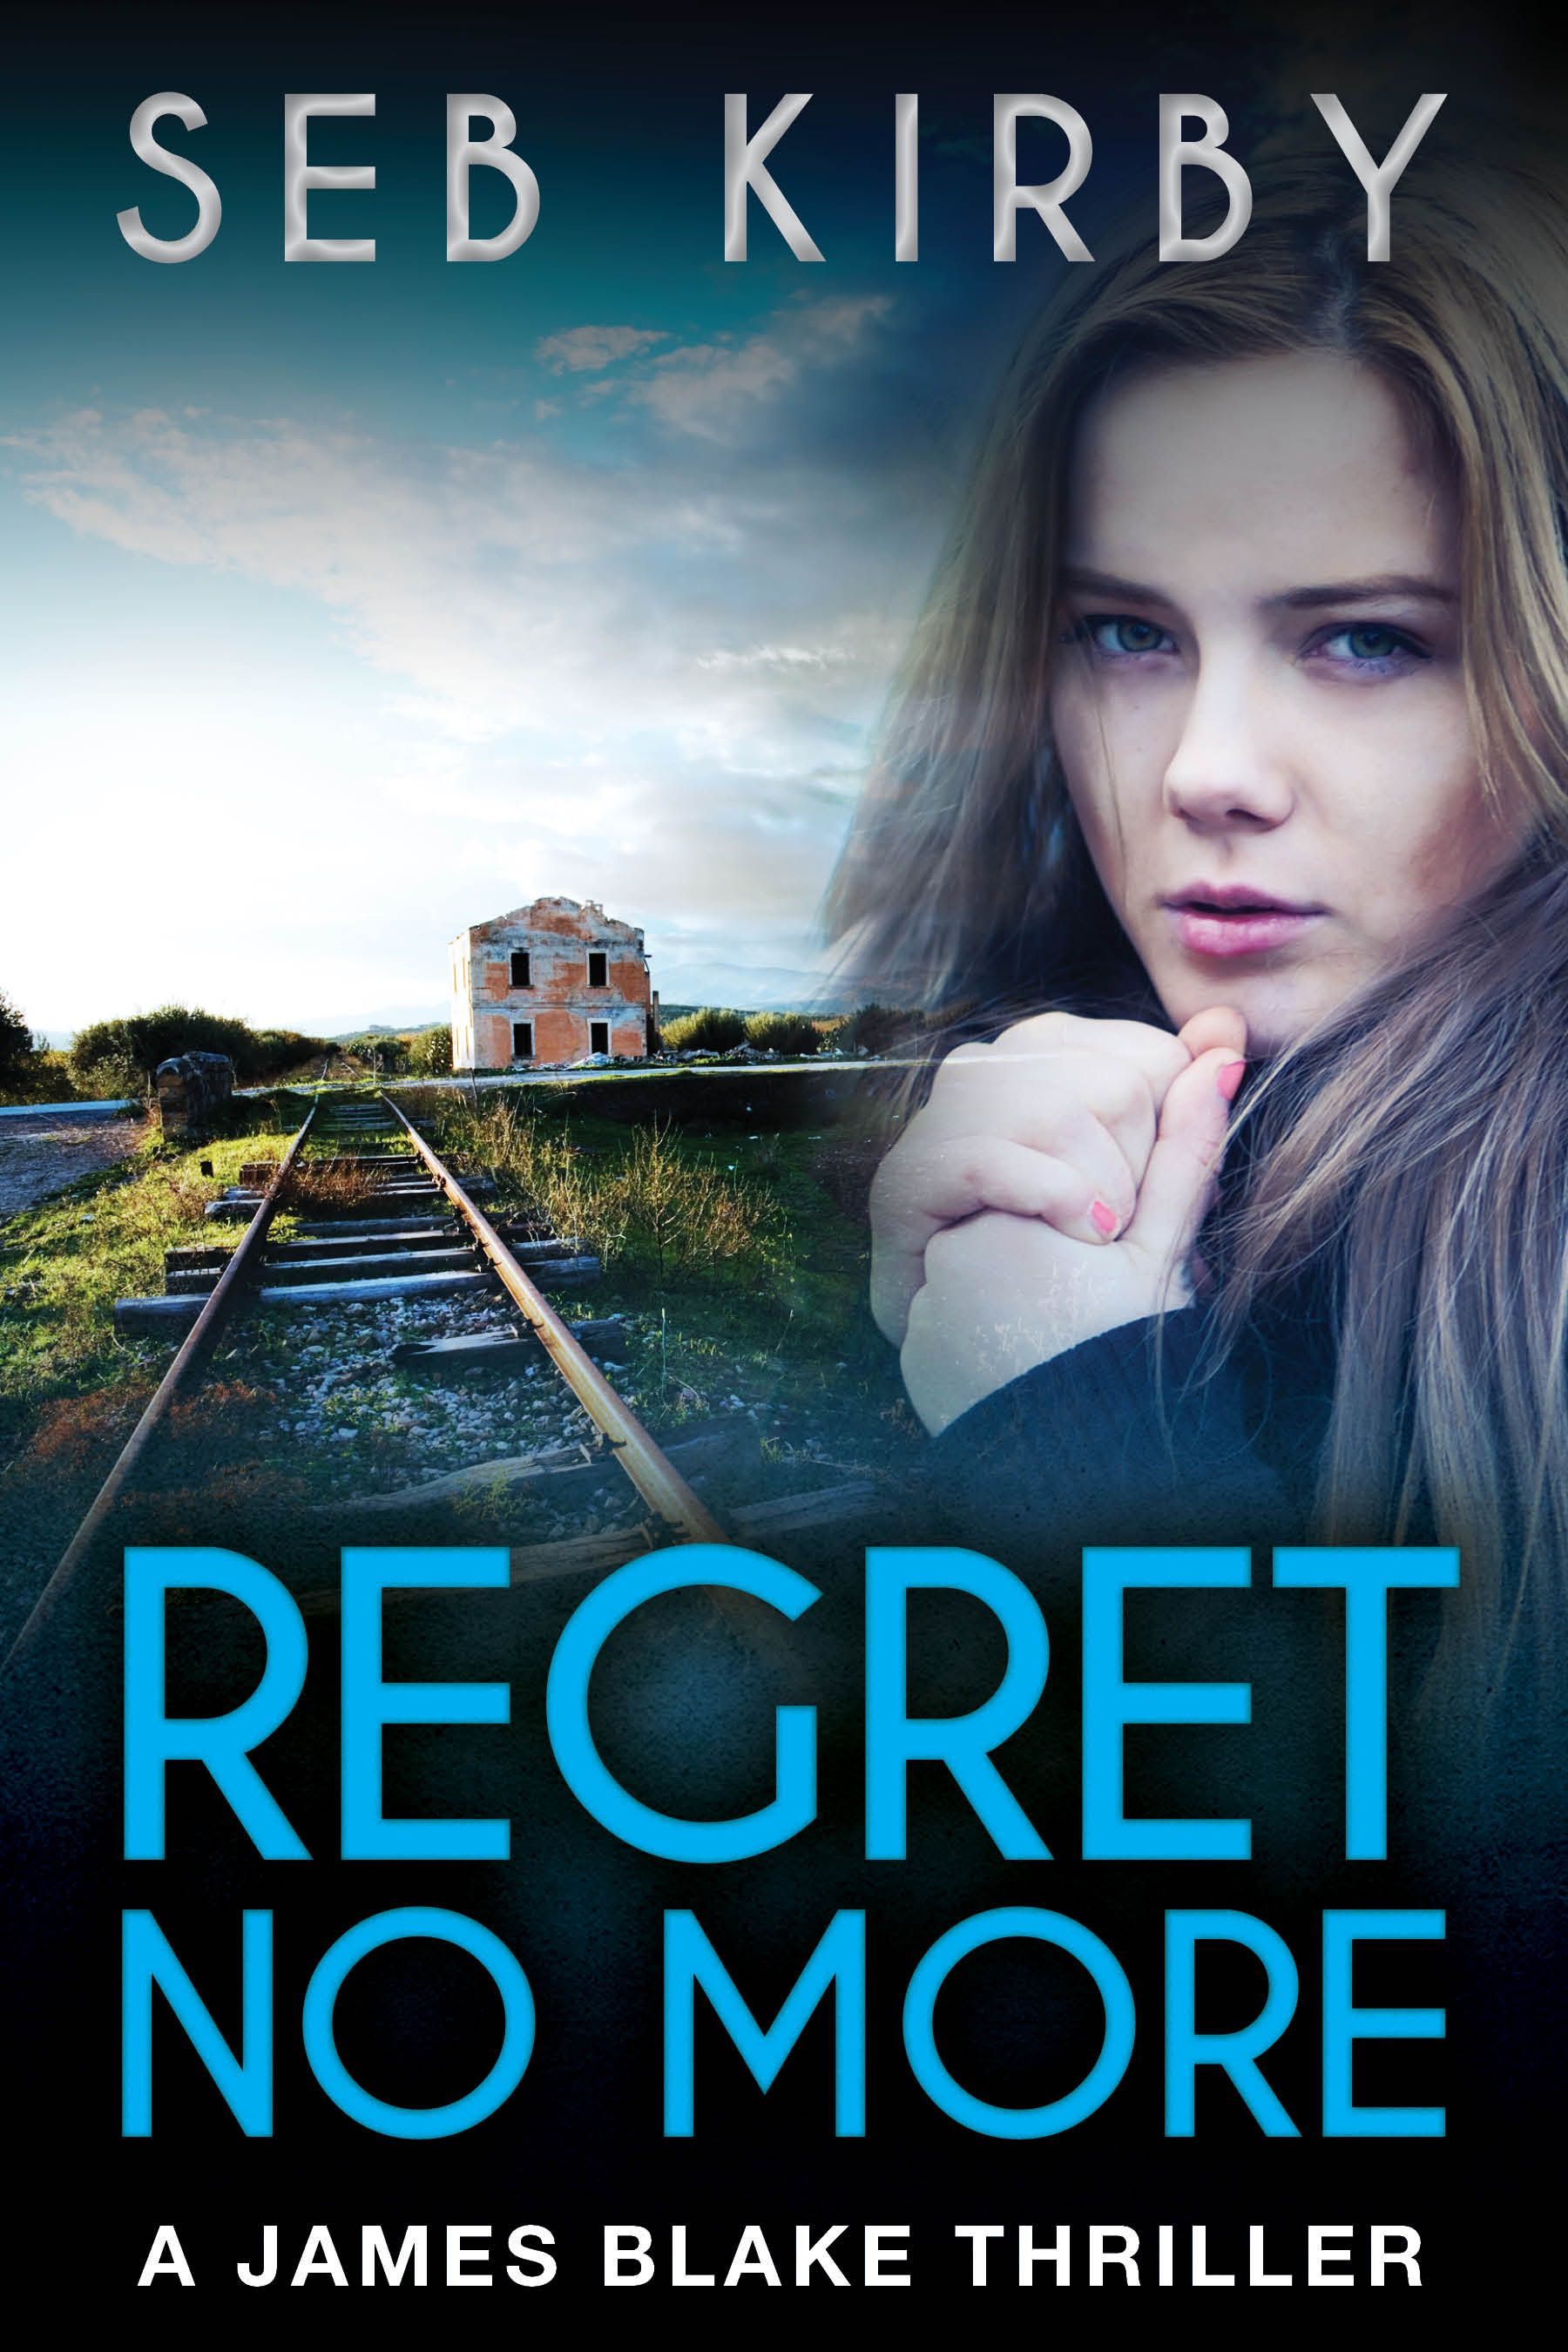 New editions of REGRET NO MORE:  US Edition: http://www.amazon.com/dp/B00C8H6TFS UK Edition: http://www.amazon.com/dp/B00JARAZVS